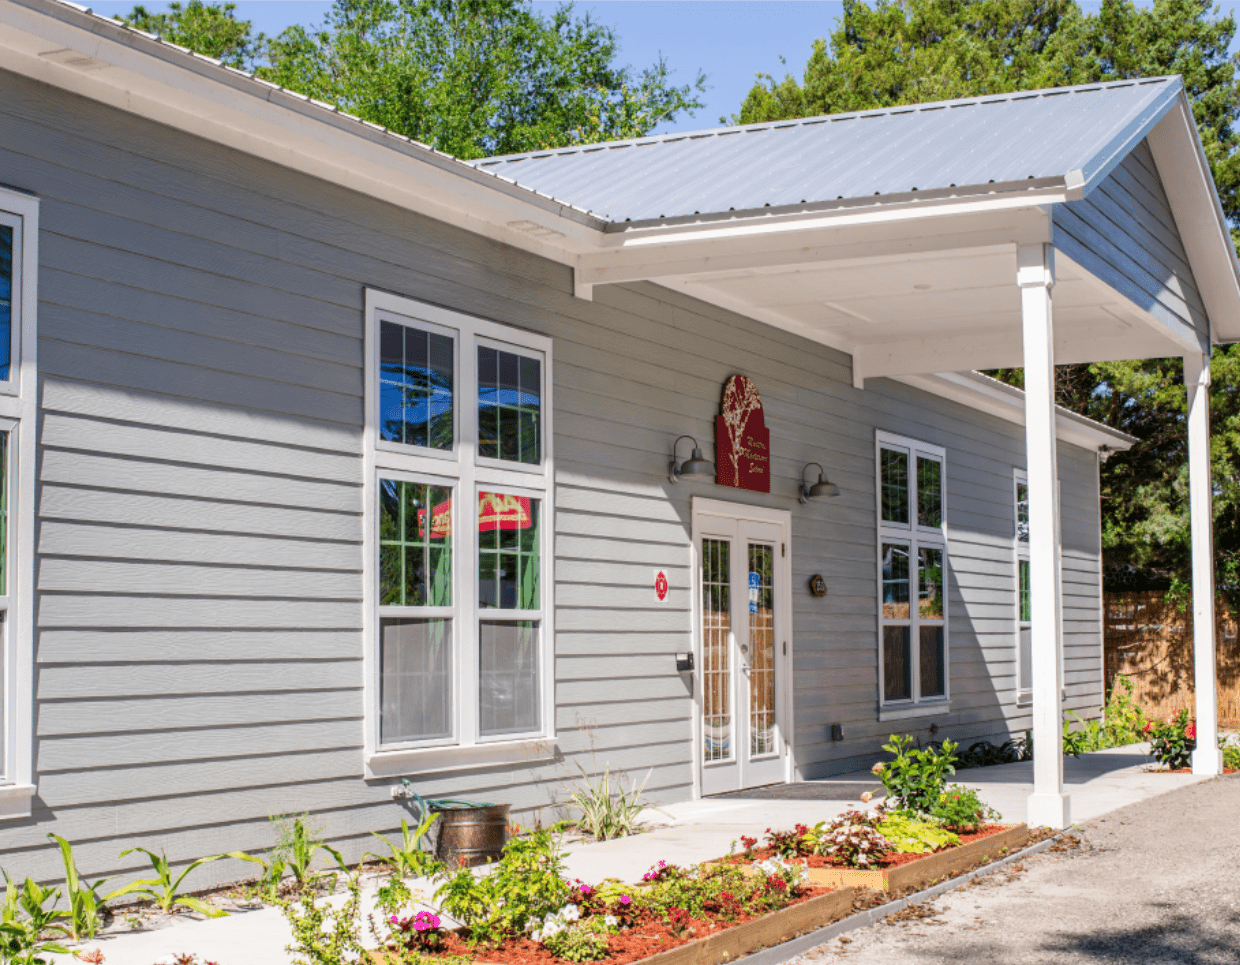 Outside view of the entrance to the Moultrie Montessori School